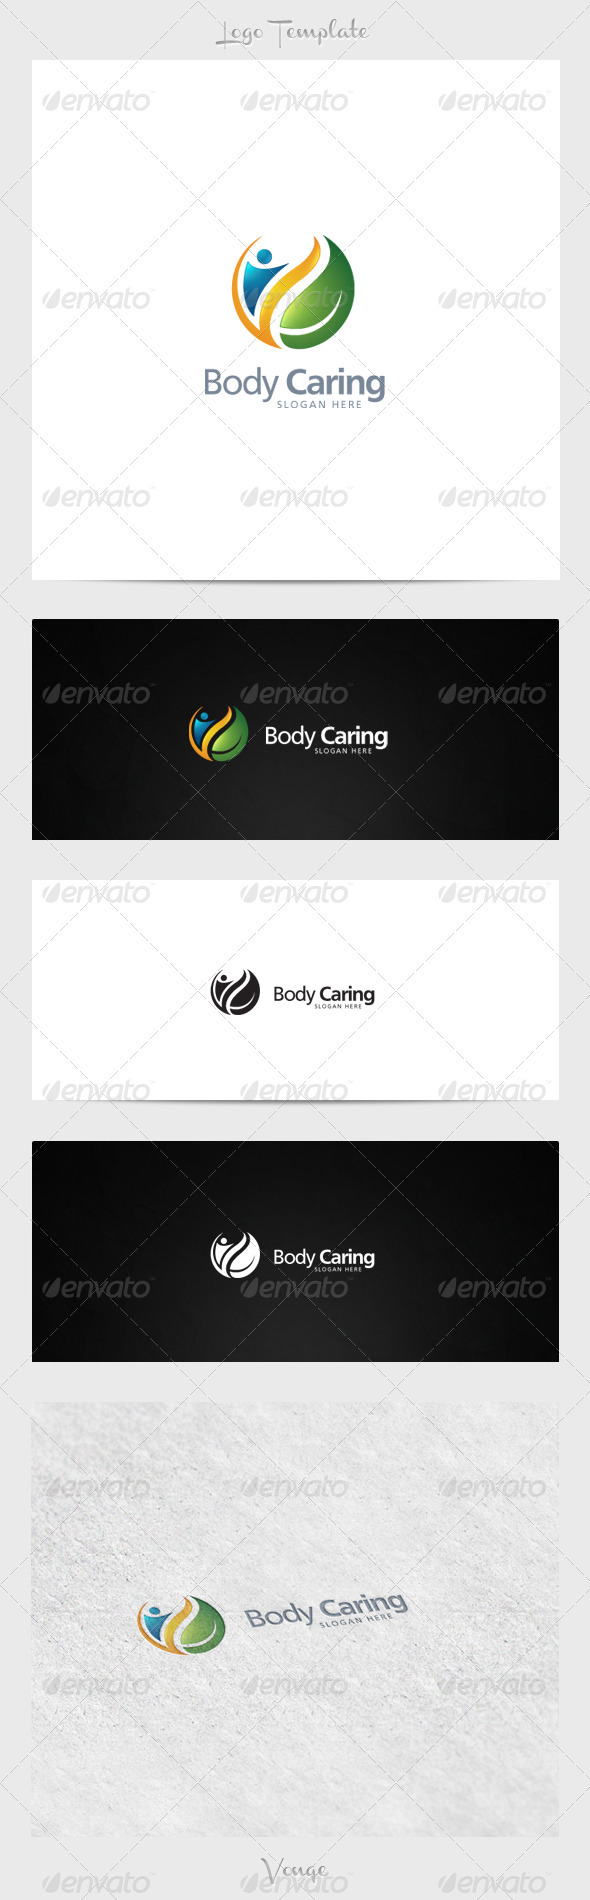 GraphicRiver Body Caring 3915651